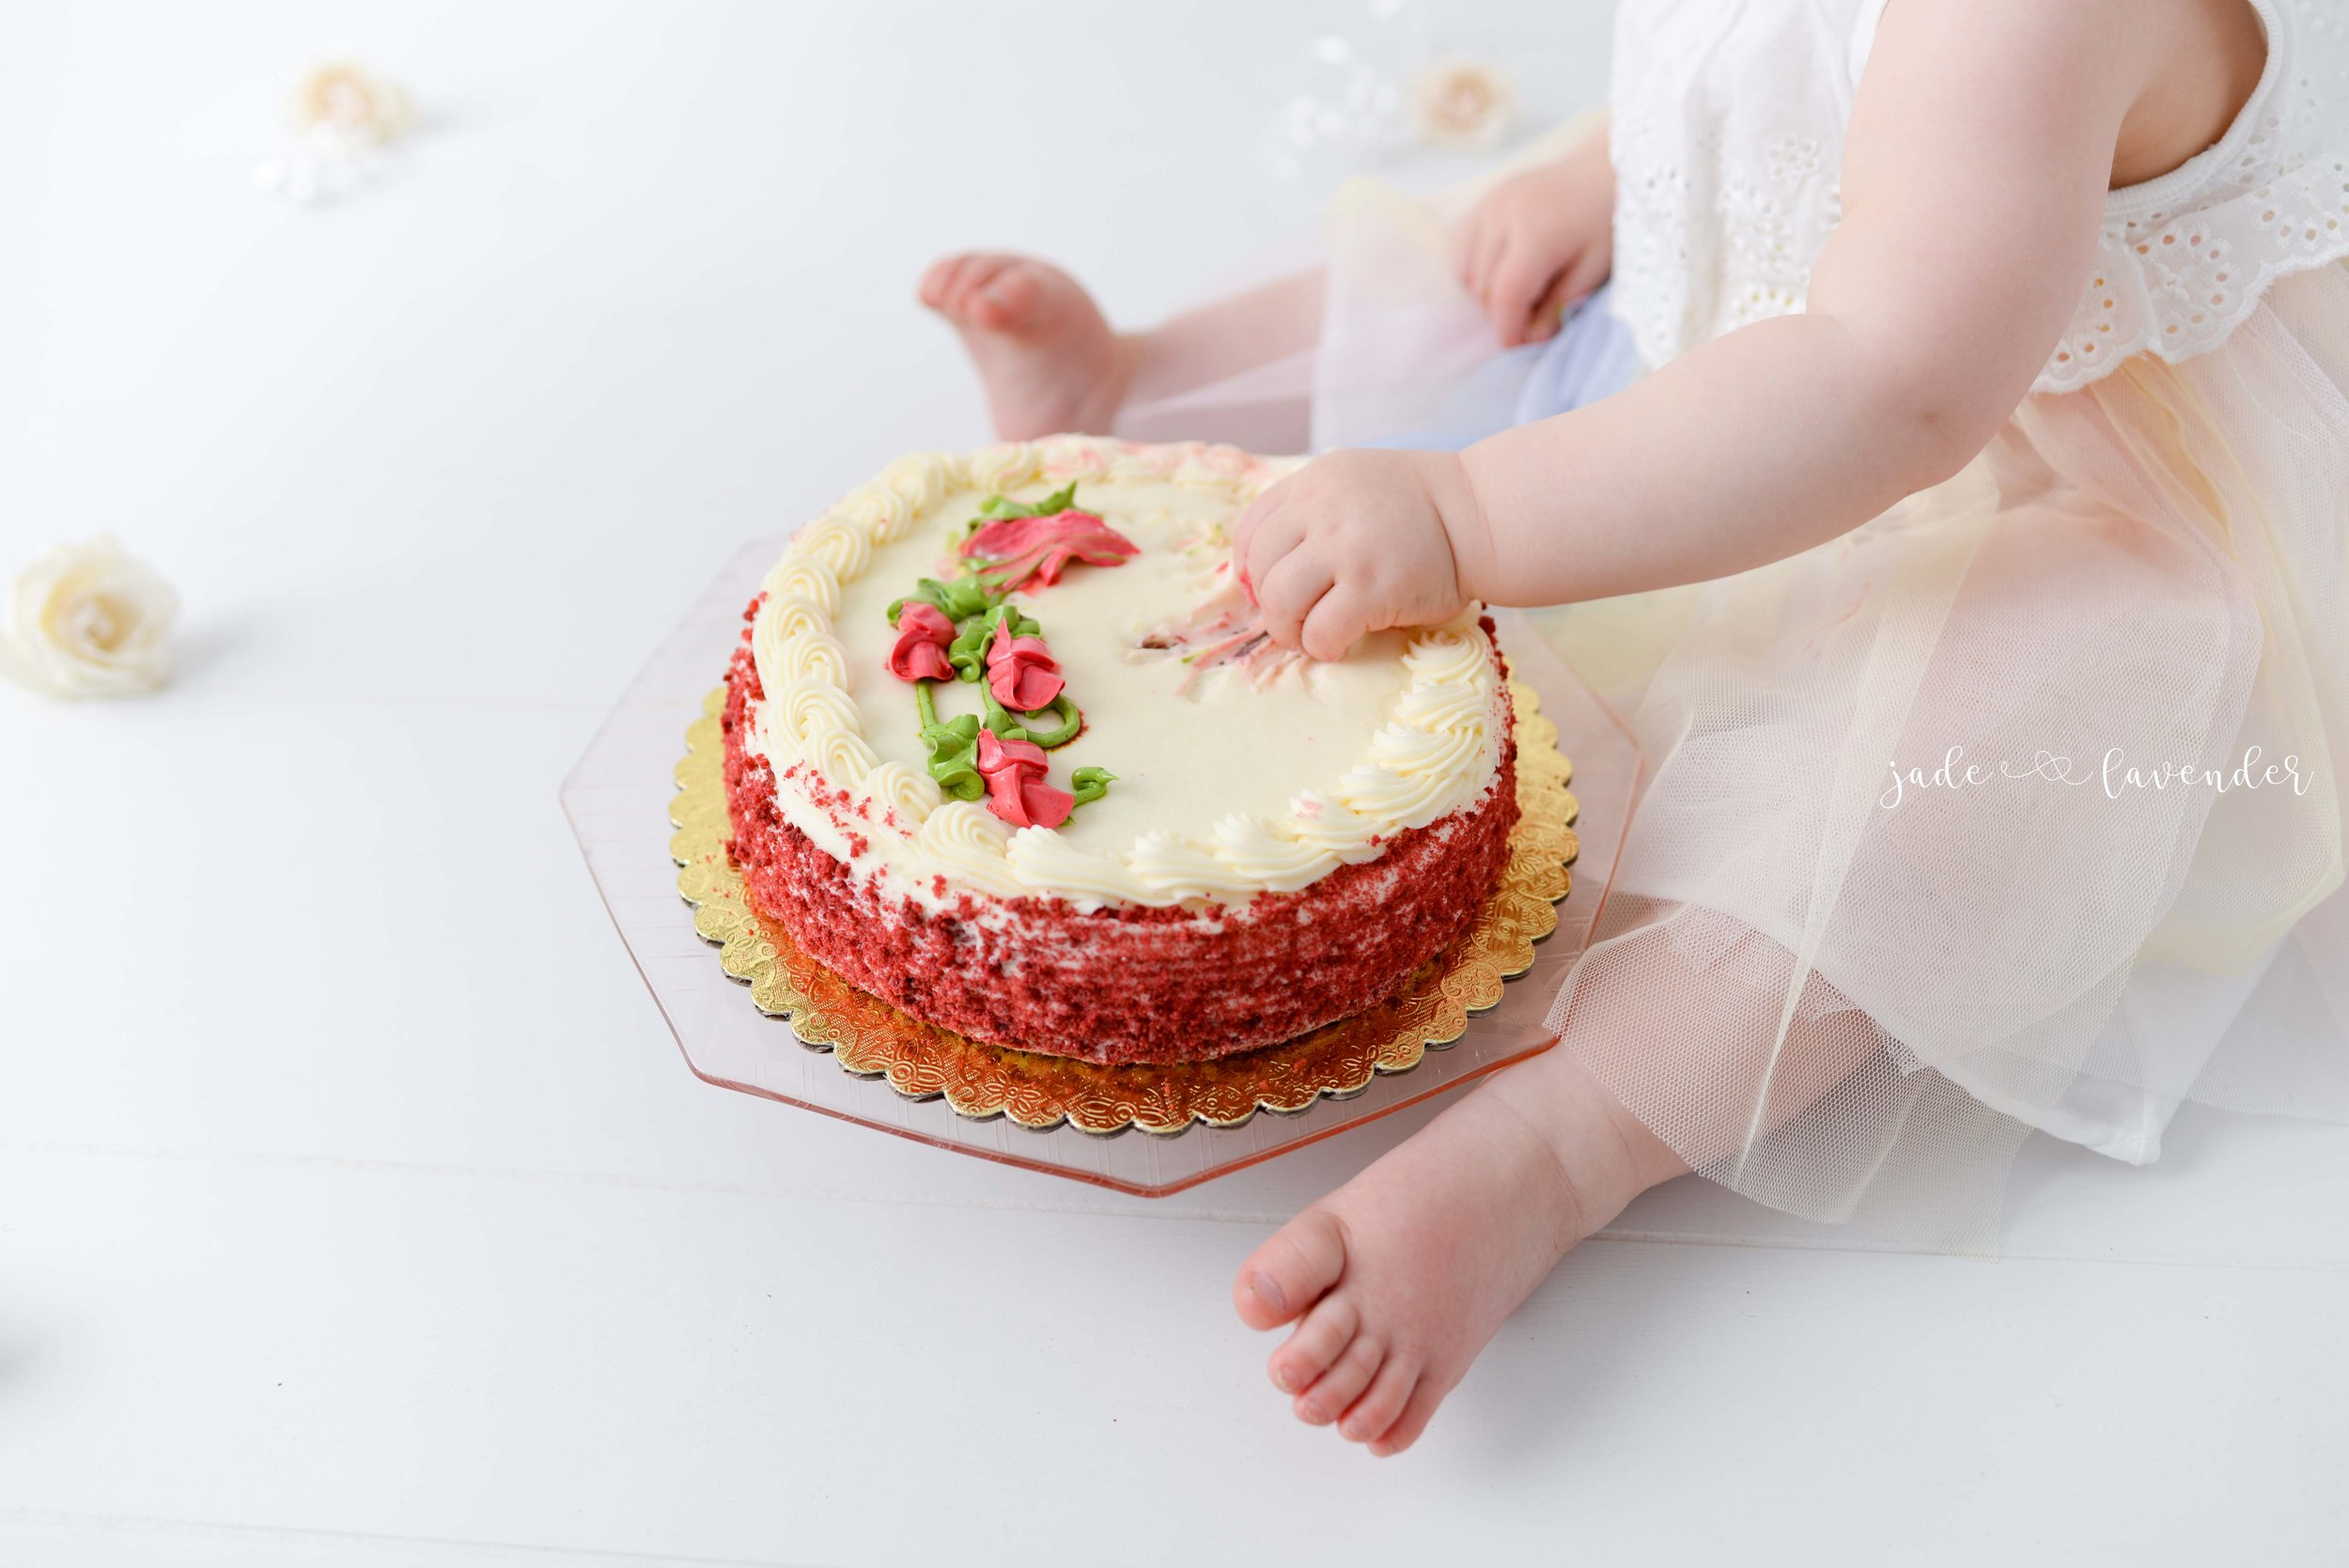 cake-smash-one-year-photos-baby-photography-newborn-infant-images-spokane-washington (5 of 6).jpg